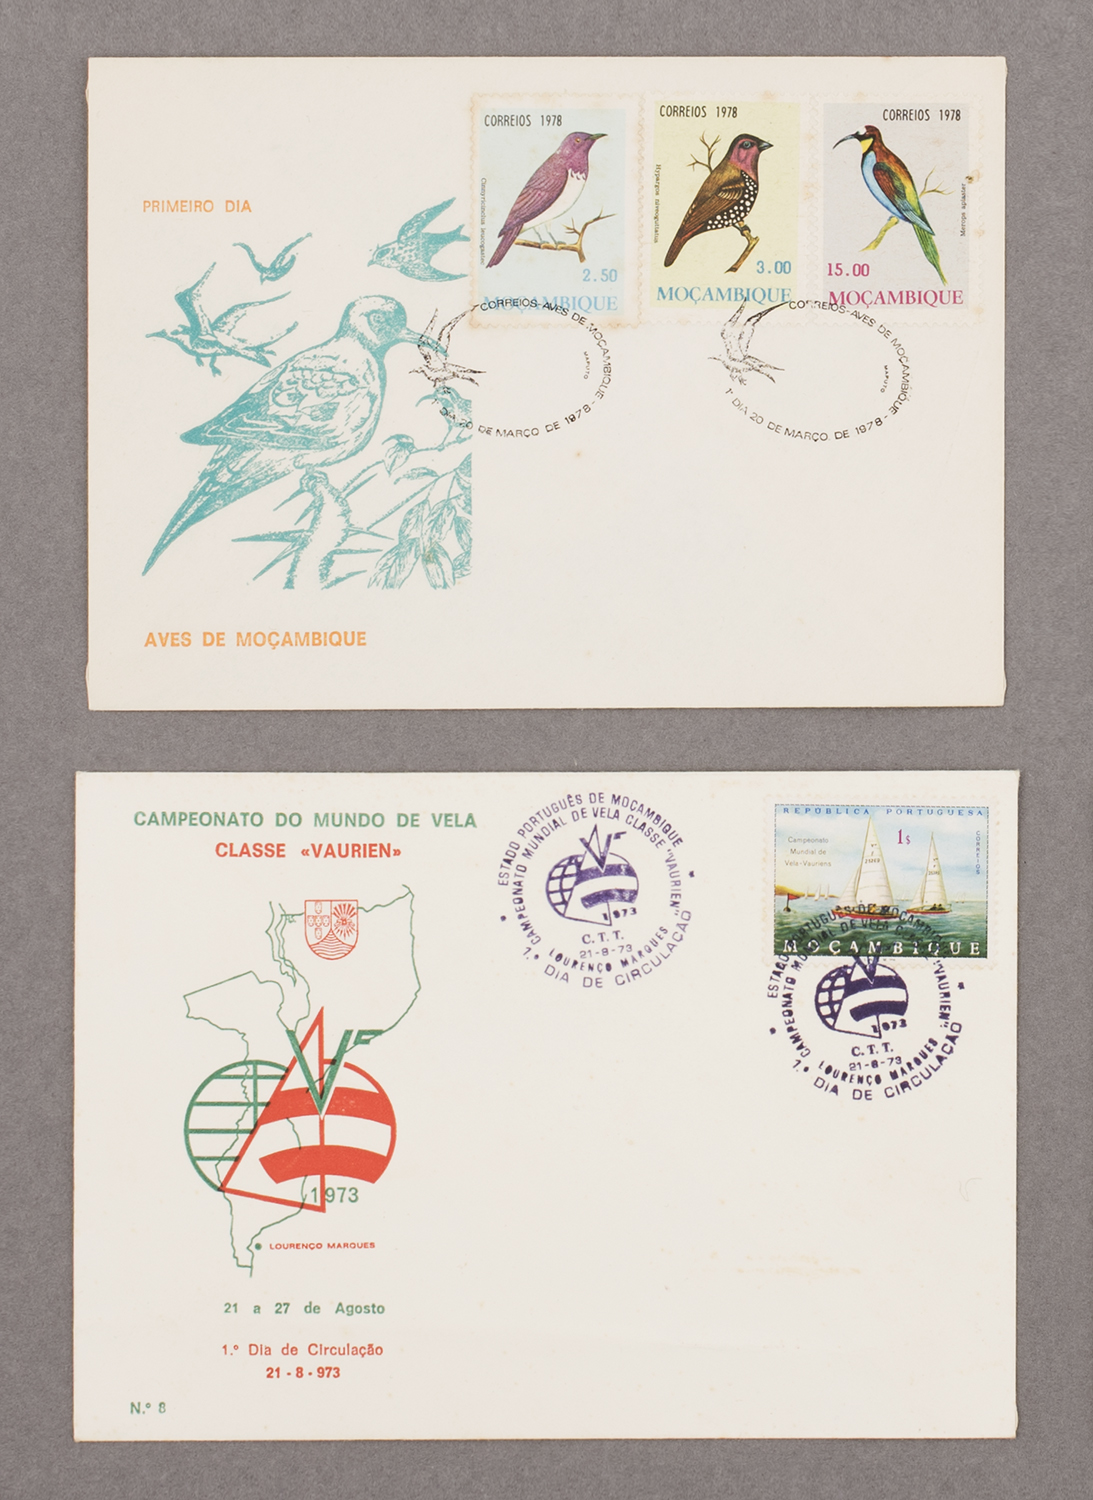 First day covers from Mozambique, 1978 & 1973,from Feira de Ladra, Lisbon